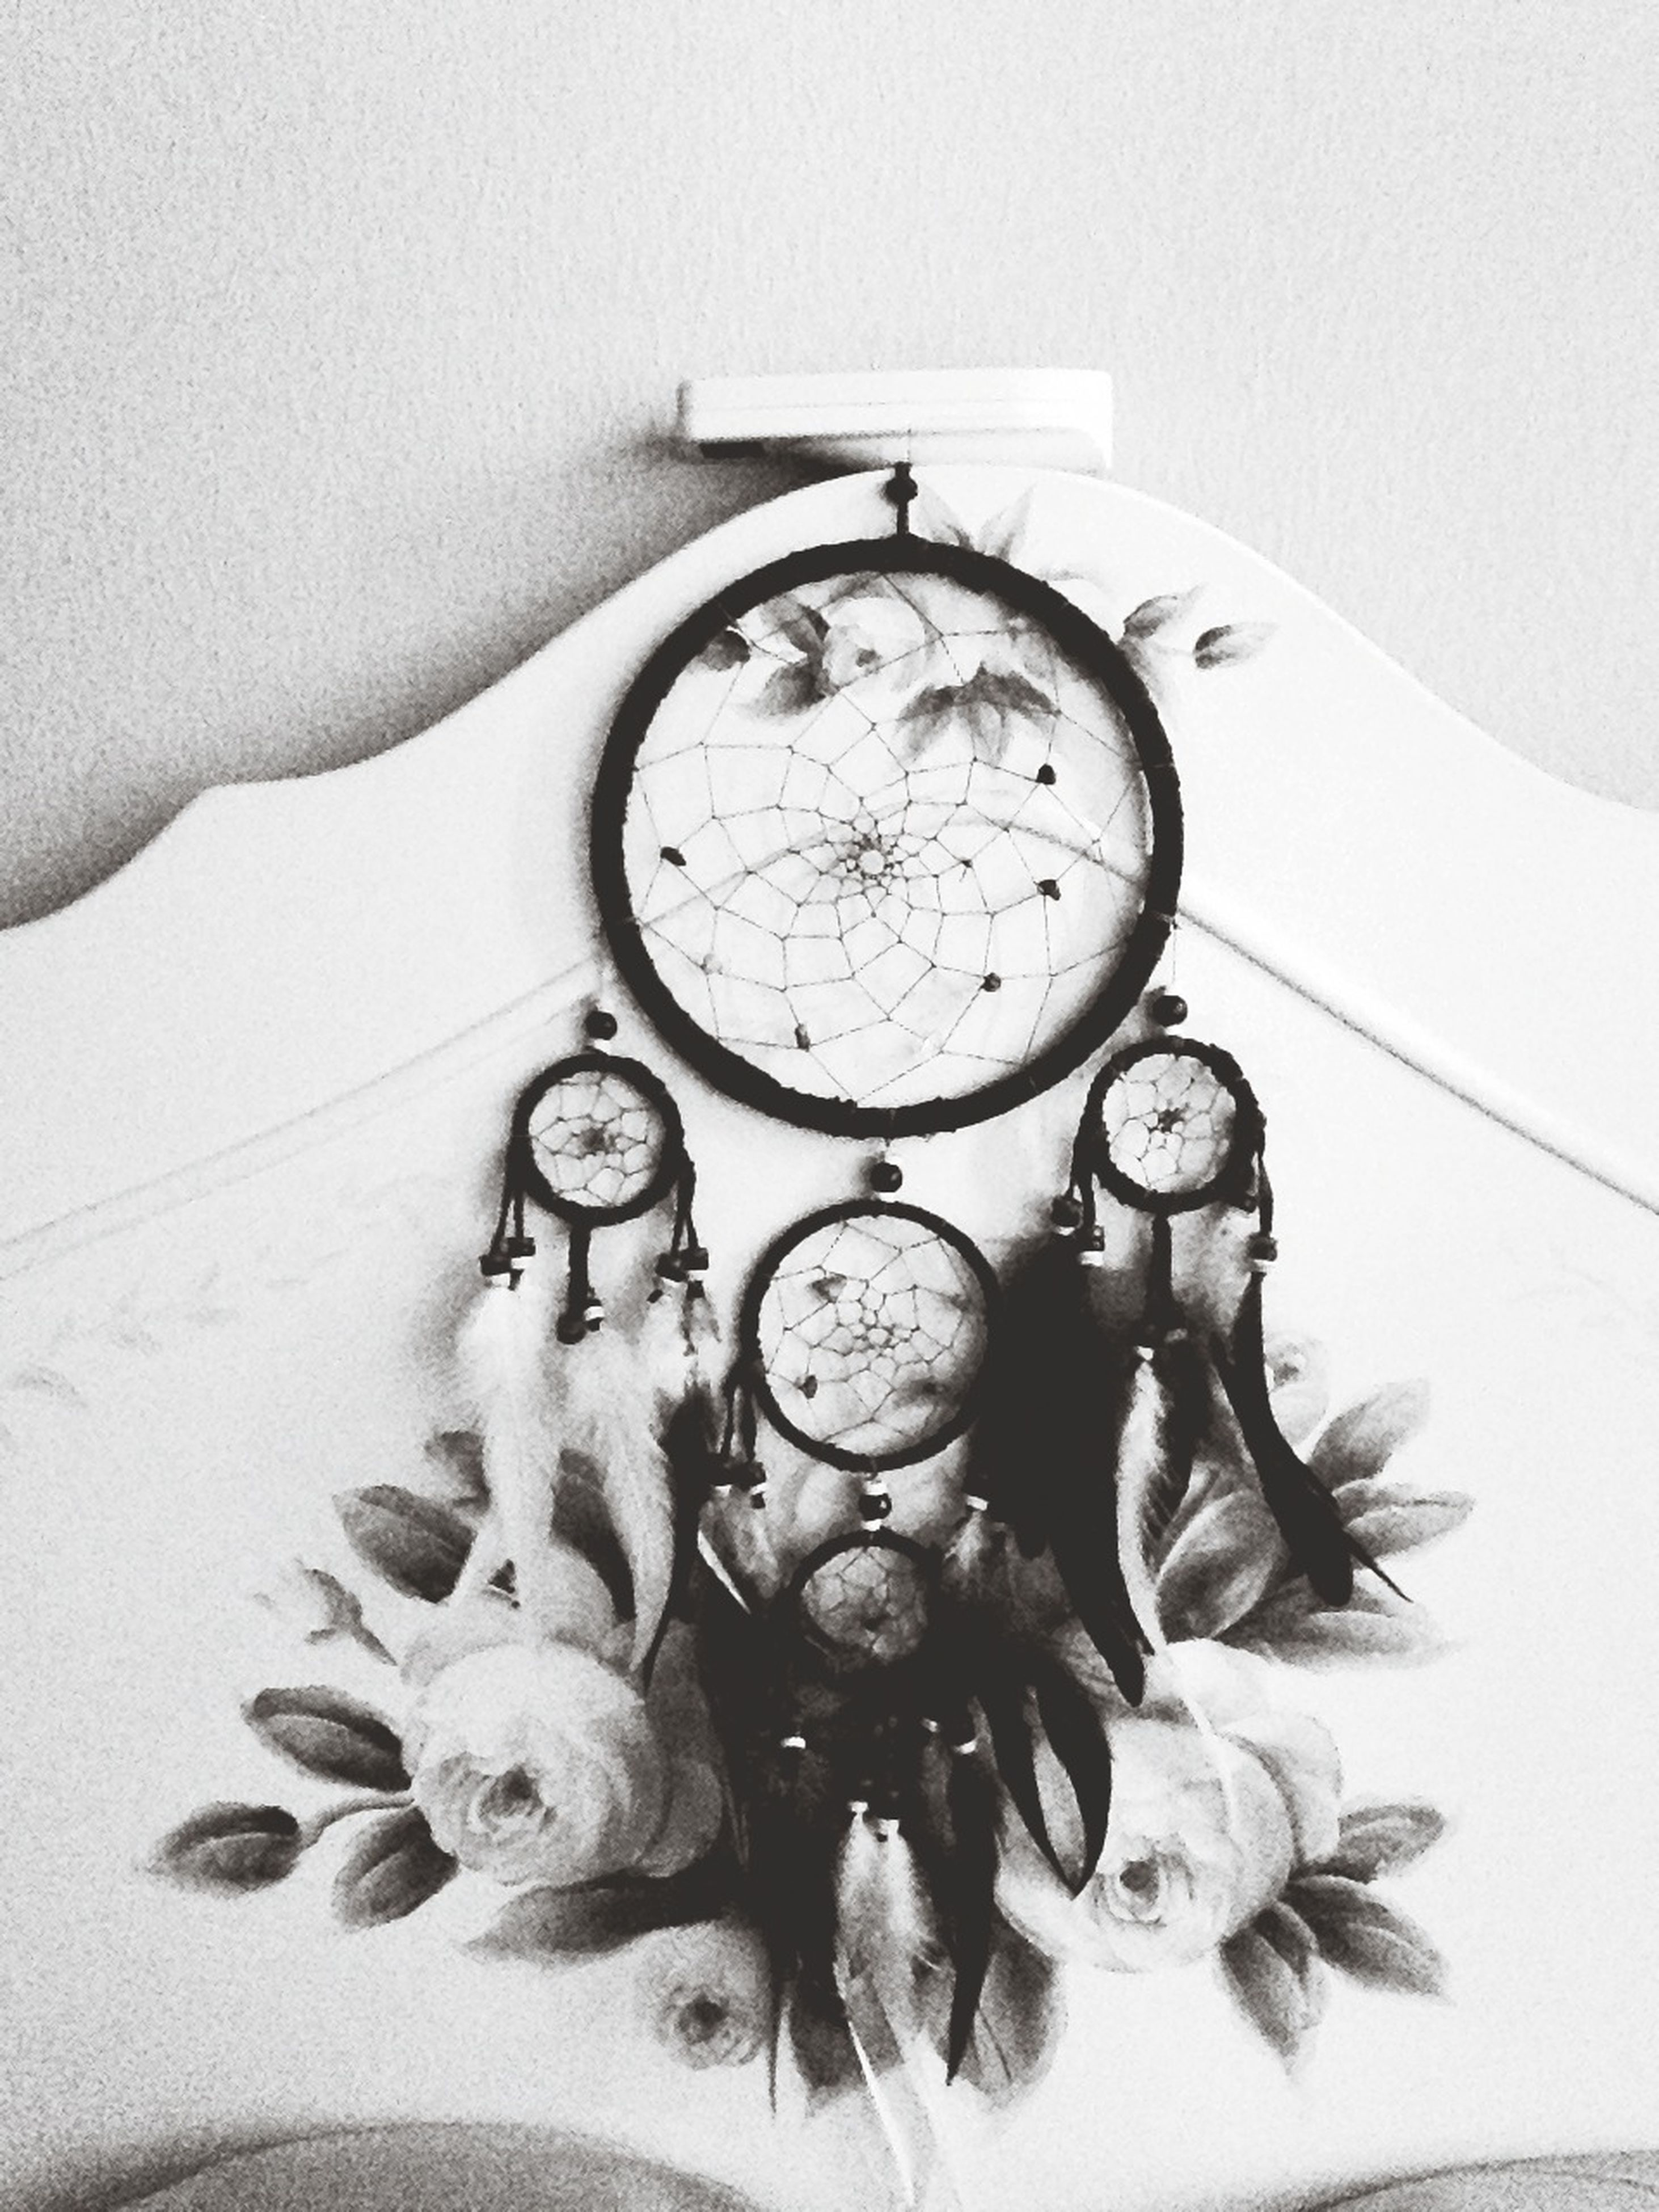 indoors, still life, high angle view, wall - building feature, table, clock, old-fashioned, human representation, close-up, technology, time, retro styled, art and craft, creativity, antique, no people, art, home interior, number, hanging